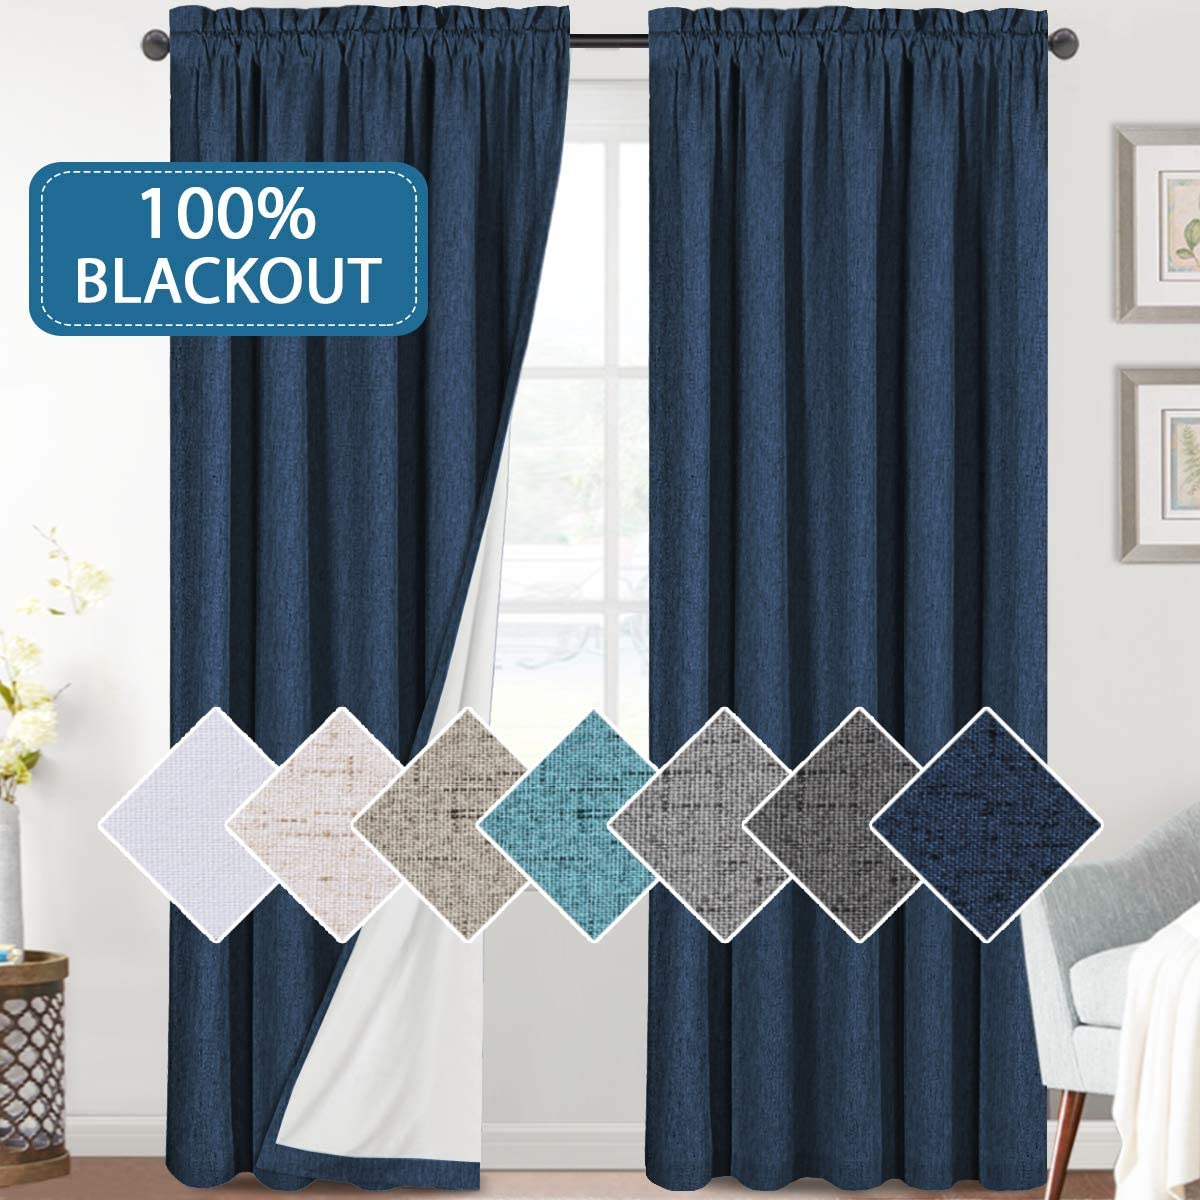 H.VERSAILTEX Linen Look 100% Blackout Curtains 84 Inches Long for Bedroom Full Light Blocking Rod Pocket Linen Textured Thick Window Curtain Drapes with White Backing, Navy, 2 Panels